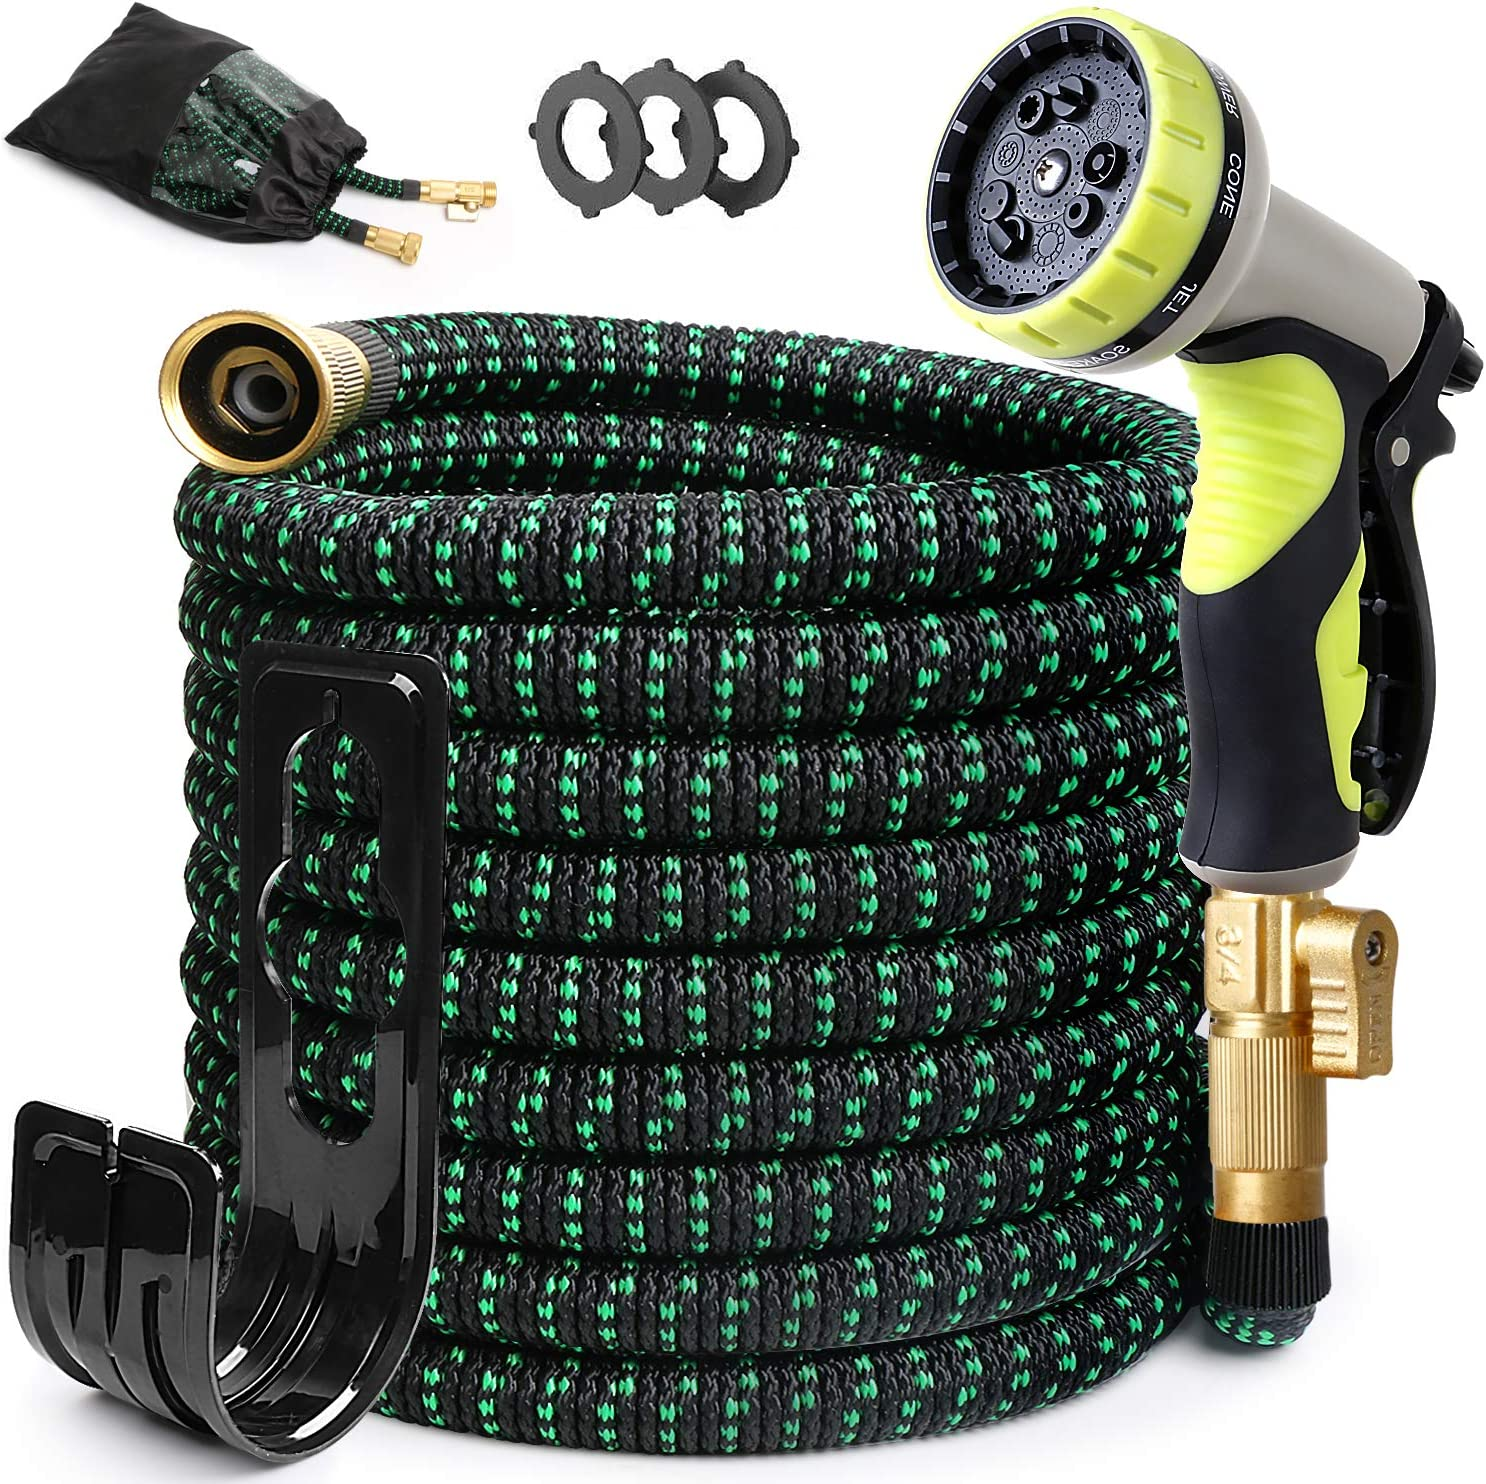 30FT Expandable Garden Hose with Solid Brass Fittings and 9 Function Nozzles Non-Kink Flexible Garden Hoses Expansion Light Hose Outdoor Garden Hose Car Wash Hose Water Hoses